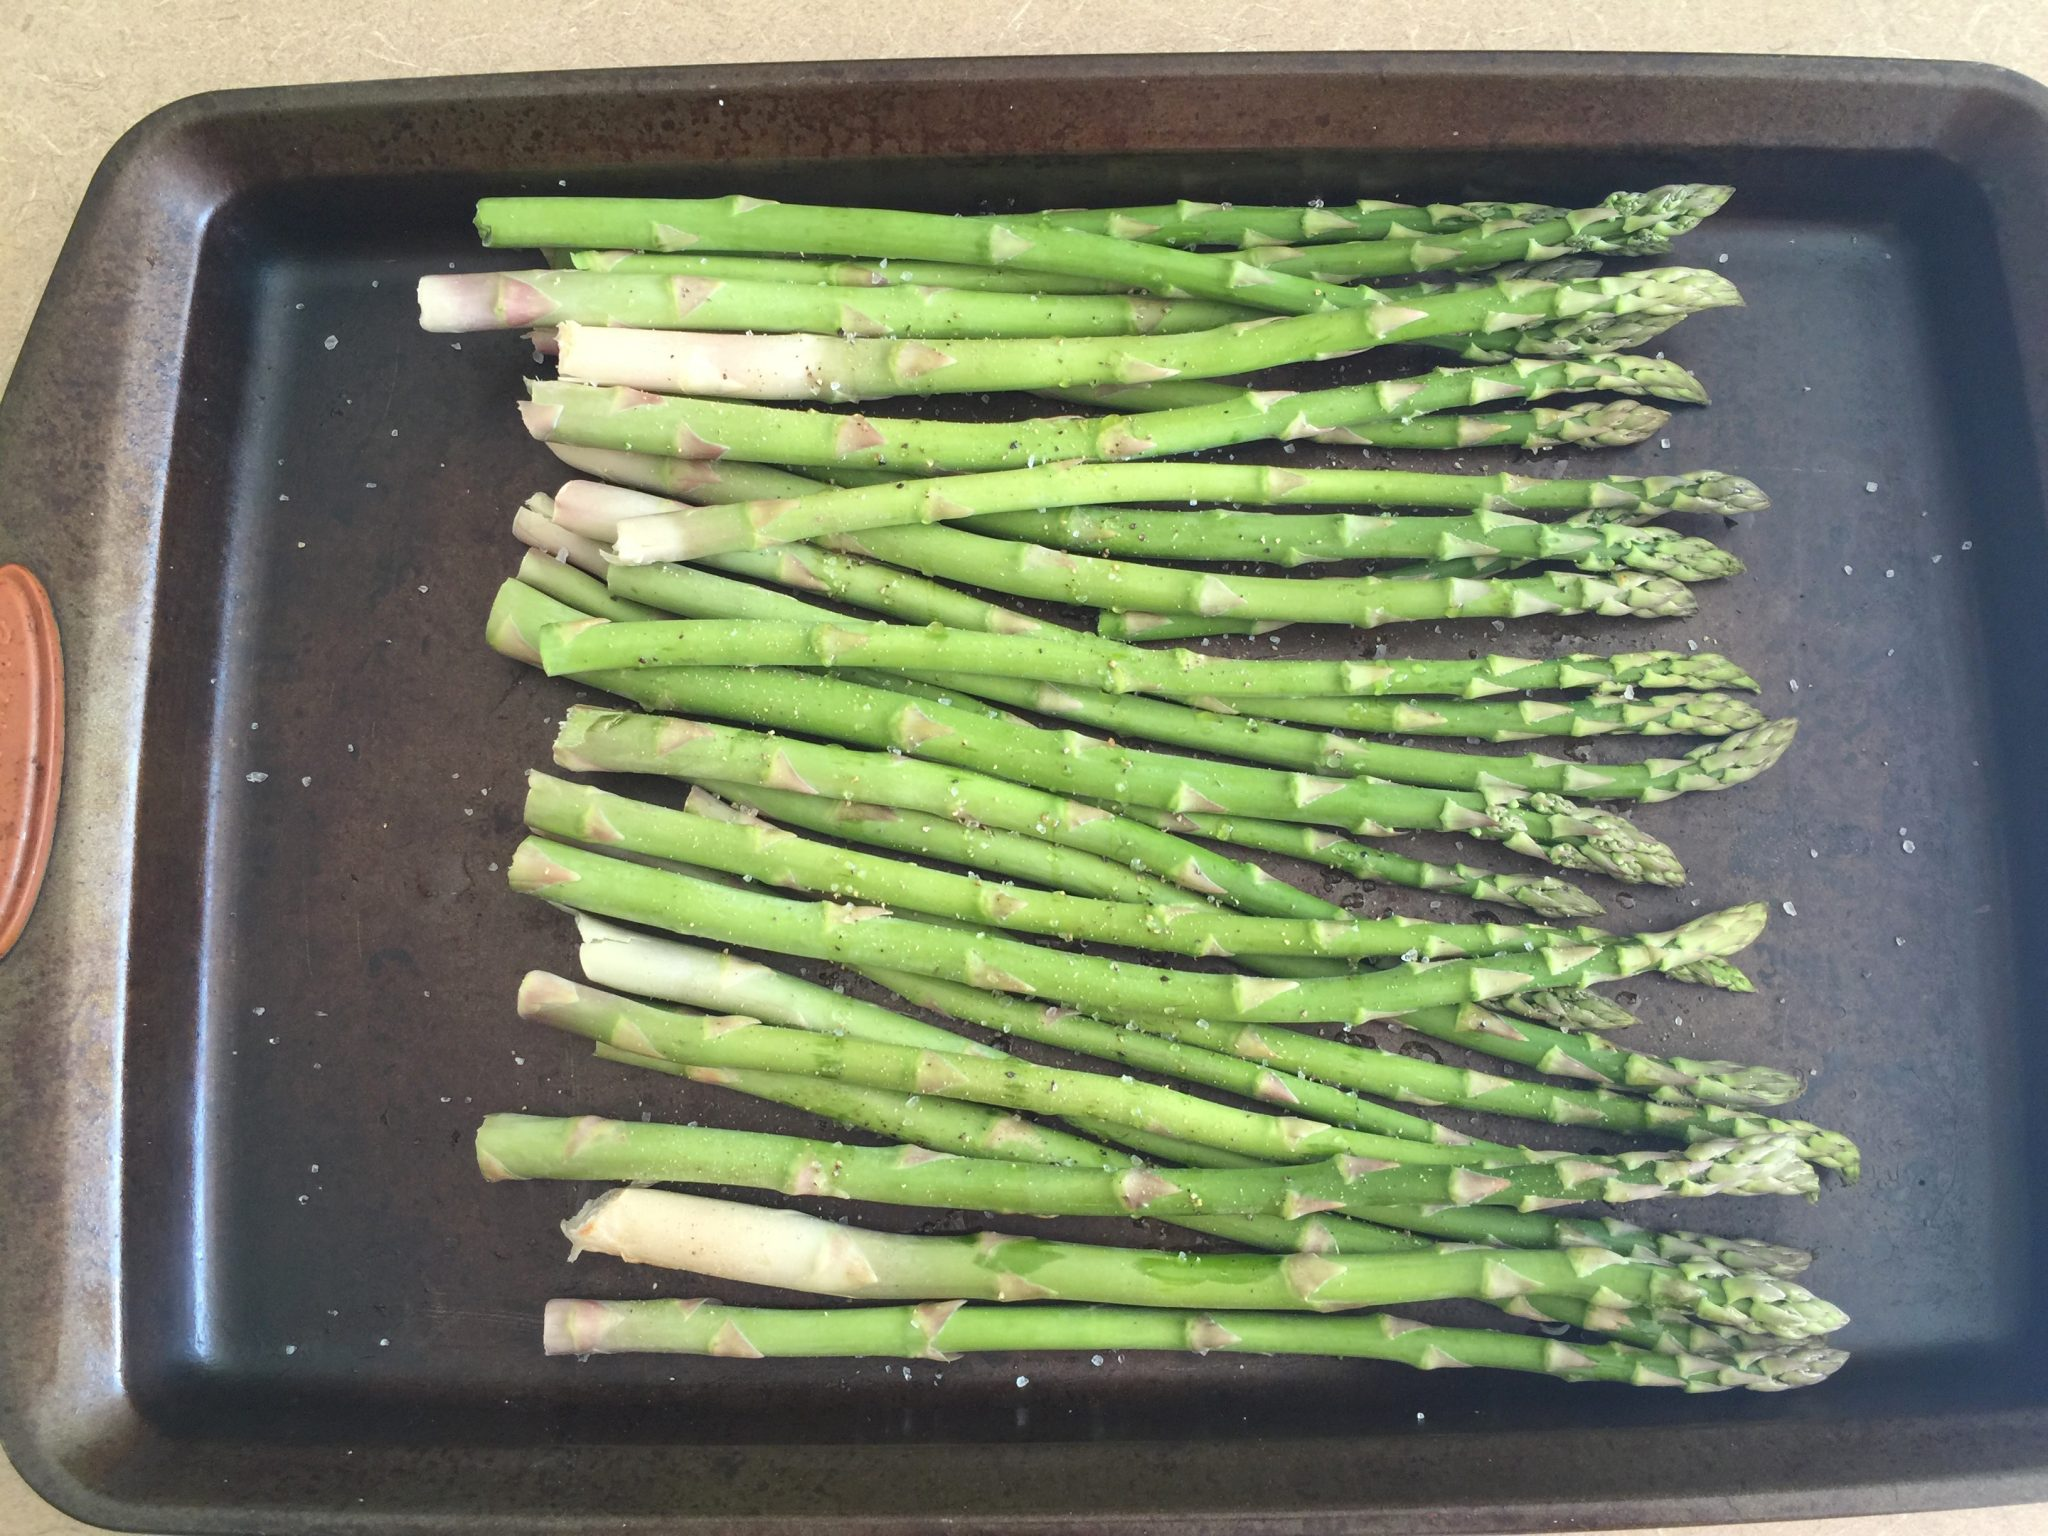 I Cooked The Fish Frozen At 375 For 15 Minutes And The Asparagus Actually  Cooked With It At The Same Time Bonus!